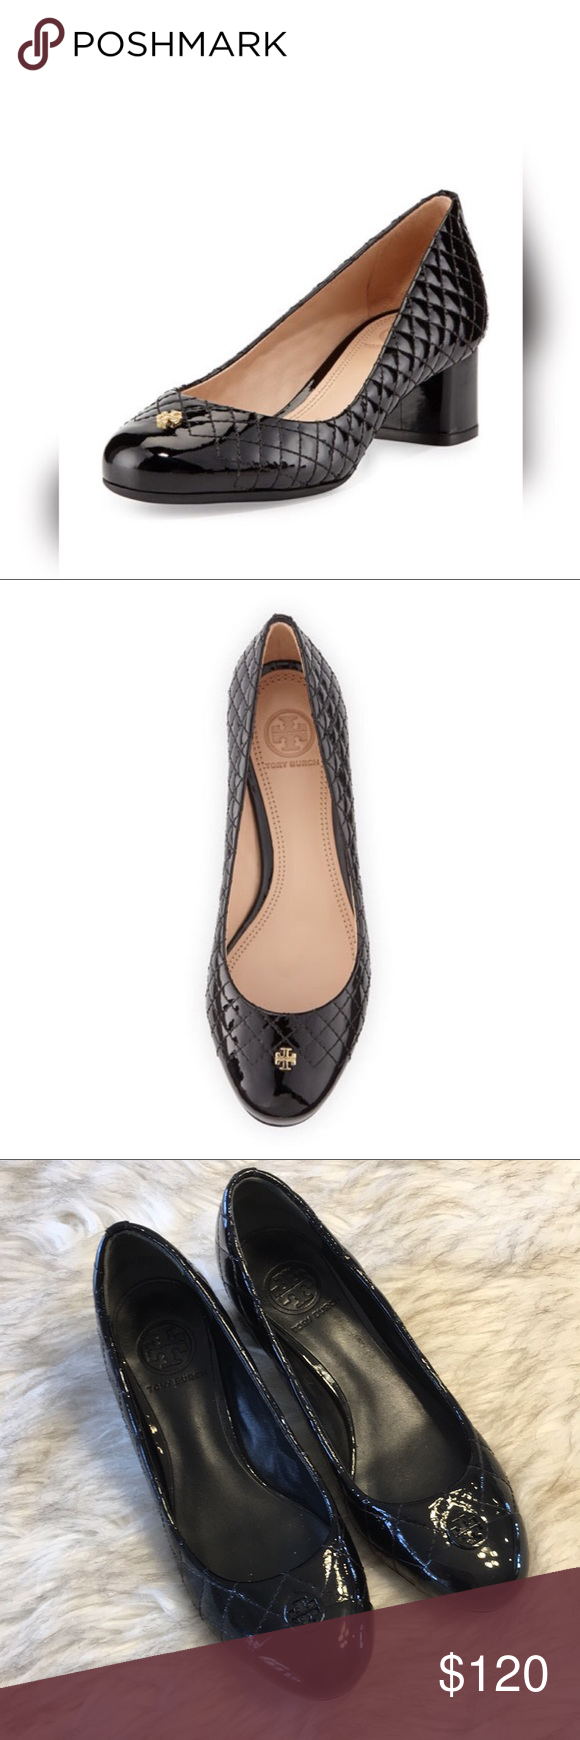 fe8d5d0c3d83 Tory Burch Kent Patent Leather Quilted Pumps Such beautiful pumps! In  beautiful condition. Only